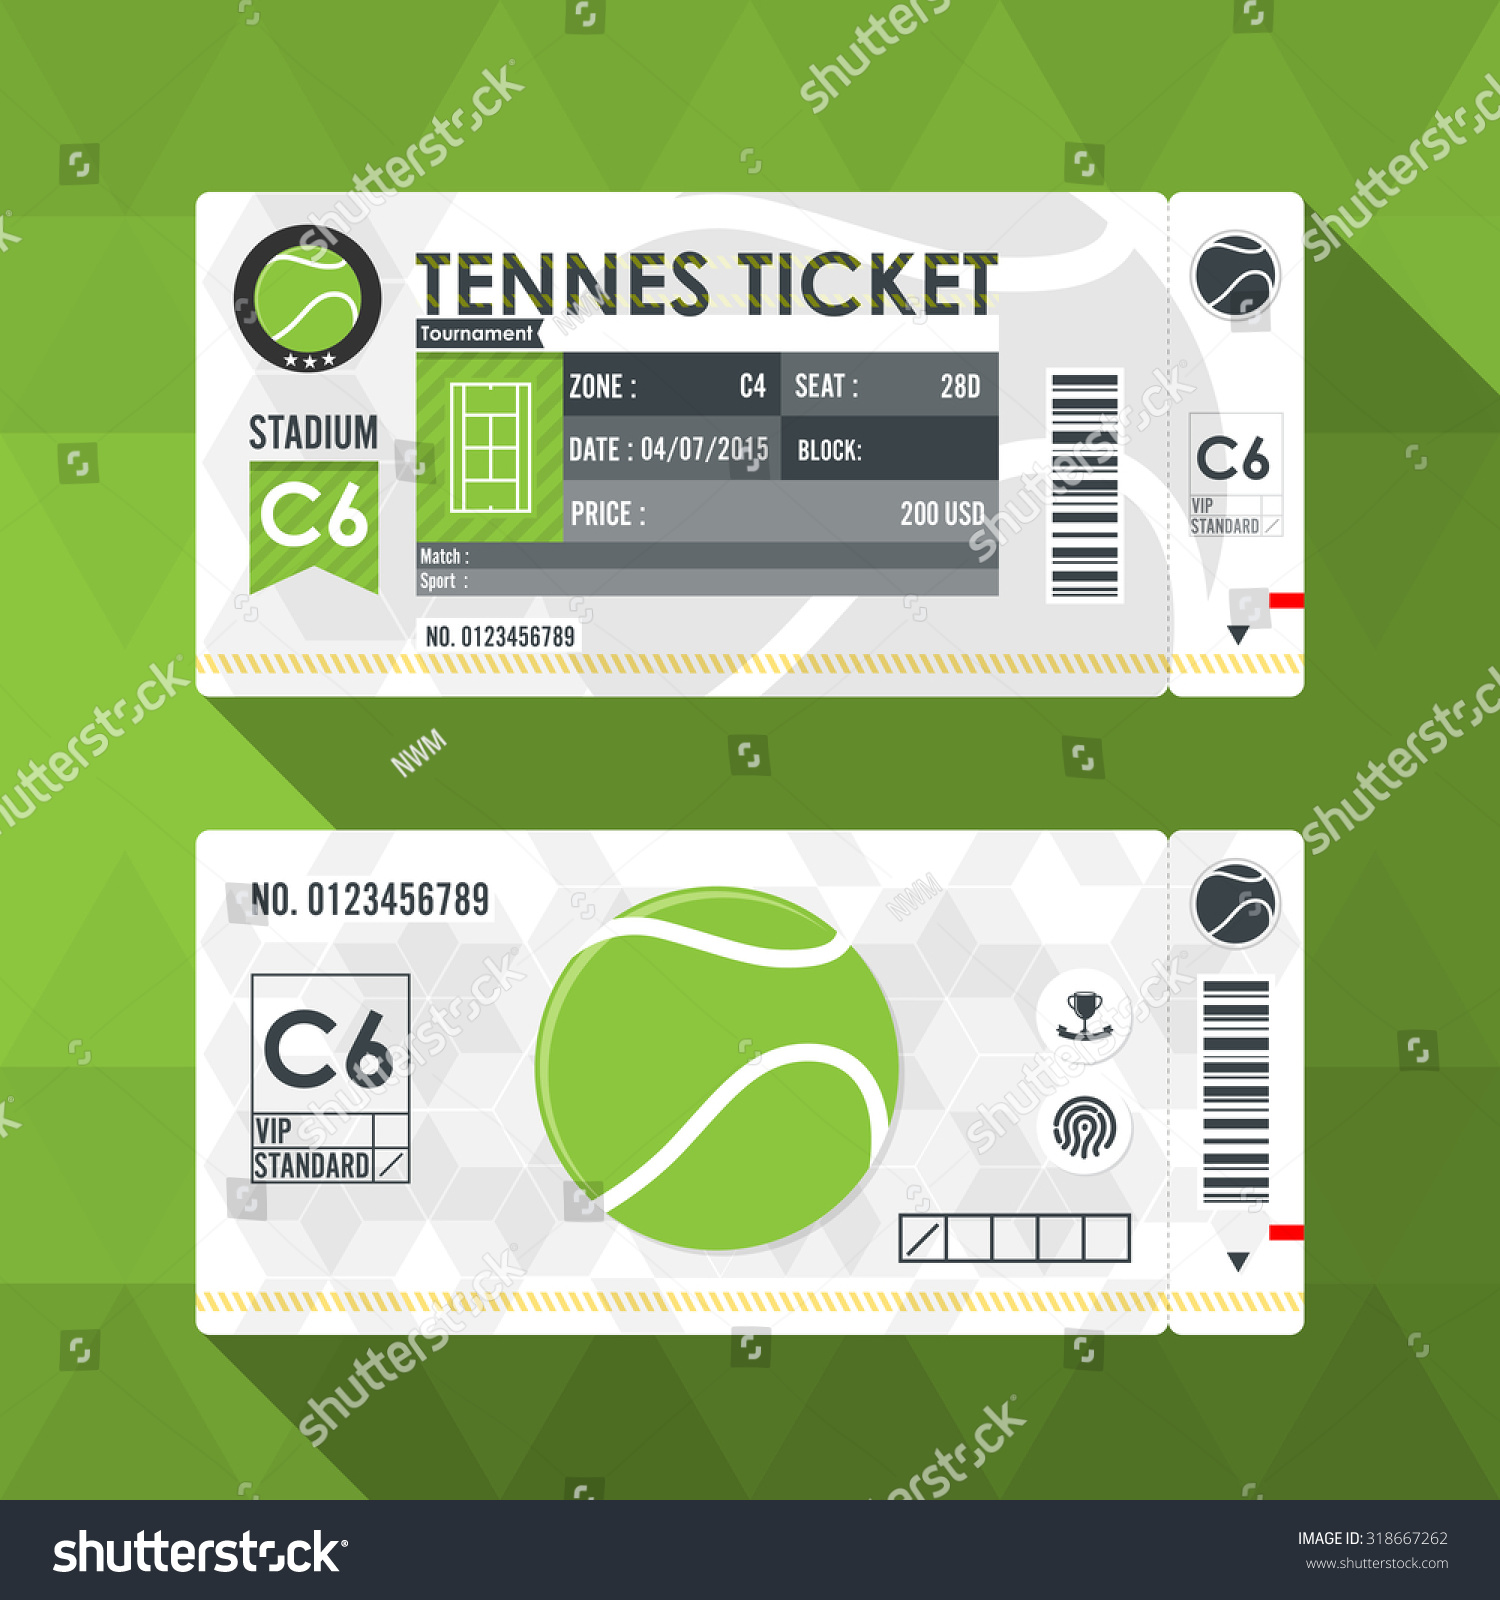 Tennis ticket card modern element design stock vector 318667262 tennis ticket card modern element design alramifo Image collections